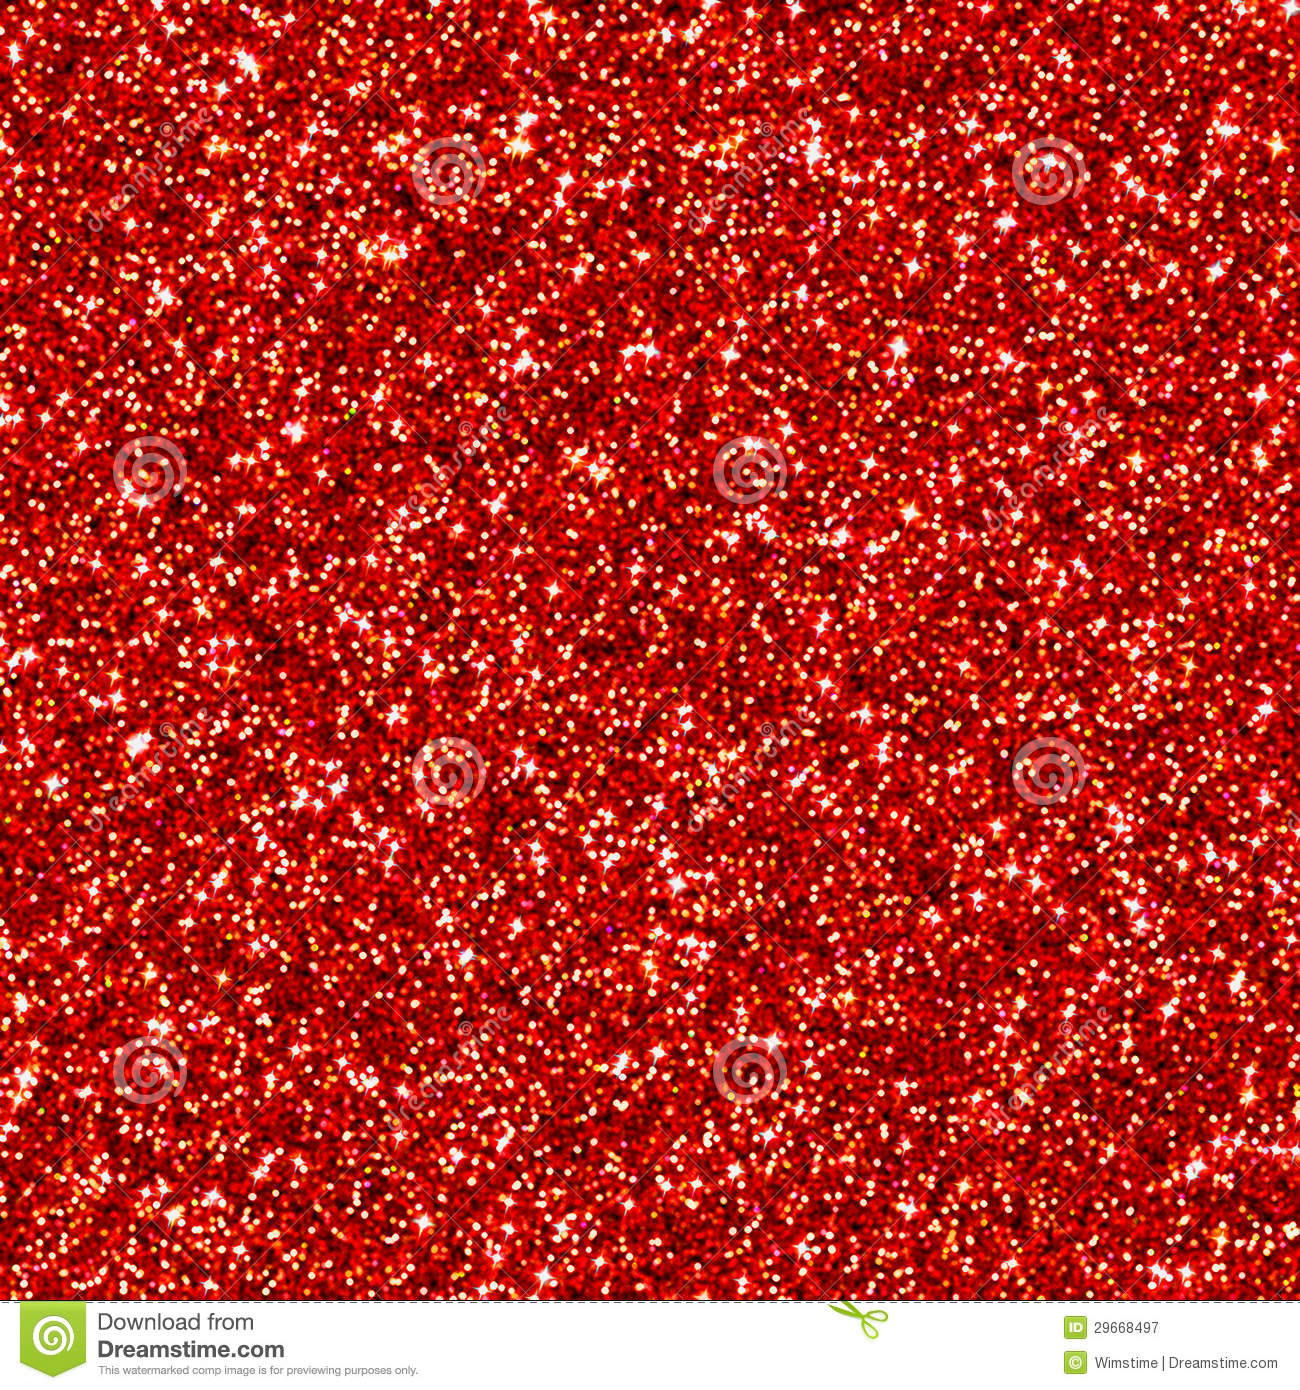 Red Glitter Royalty Free Stock Photography - Image: 29668497: www.dreamstime.com/royalty-free-stock-photography-red-glitter...